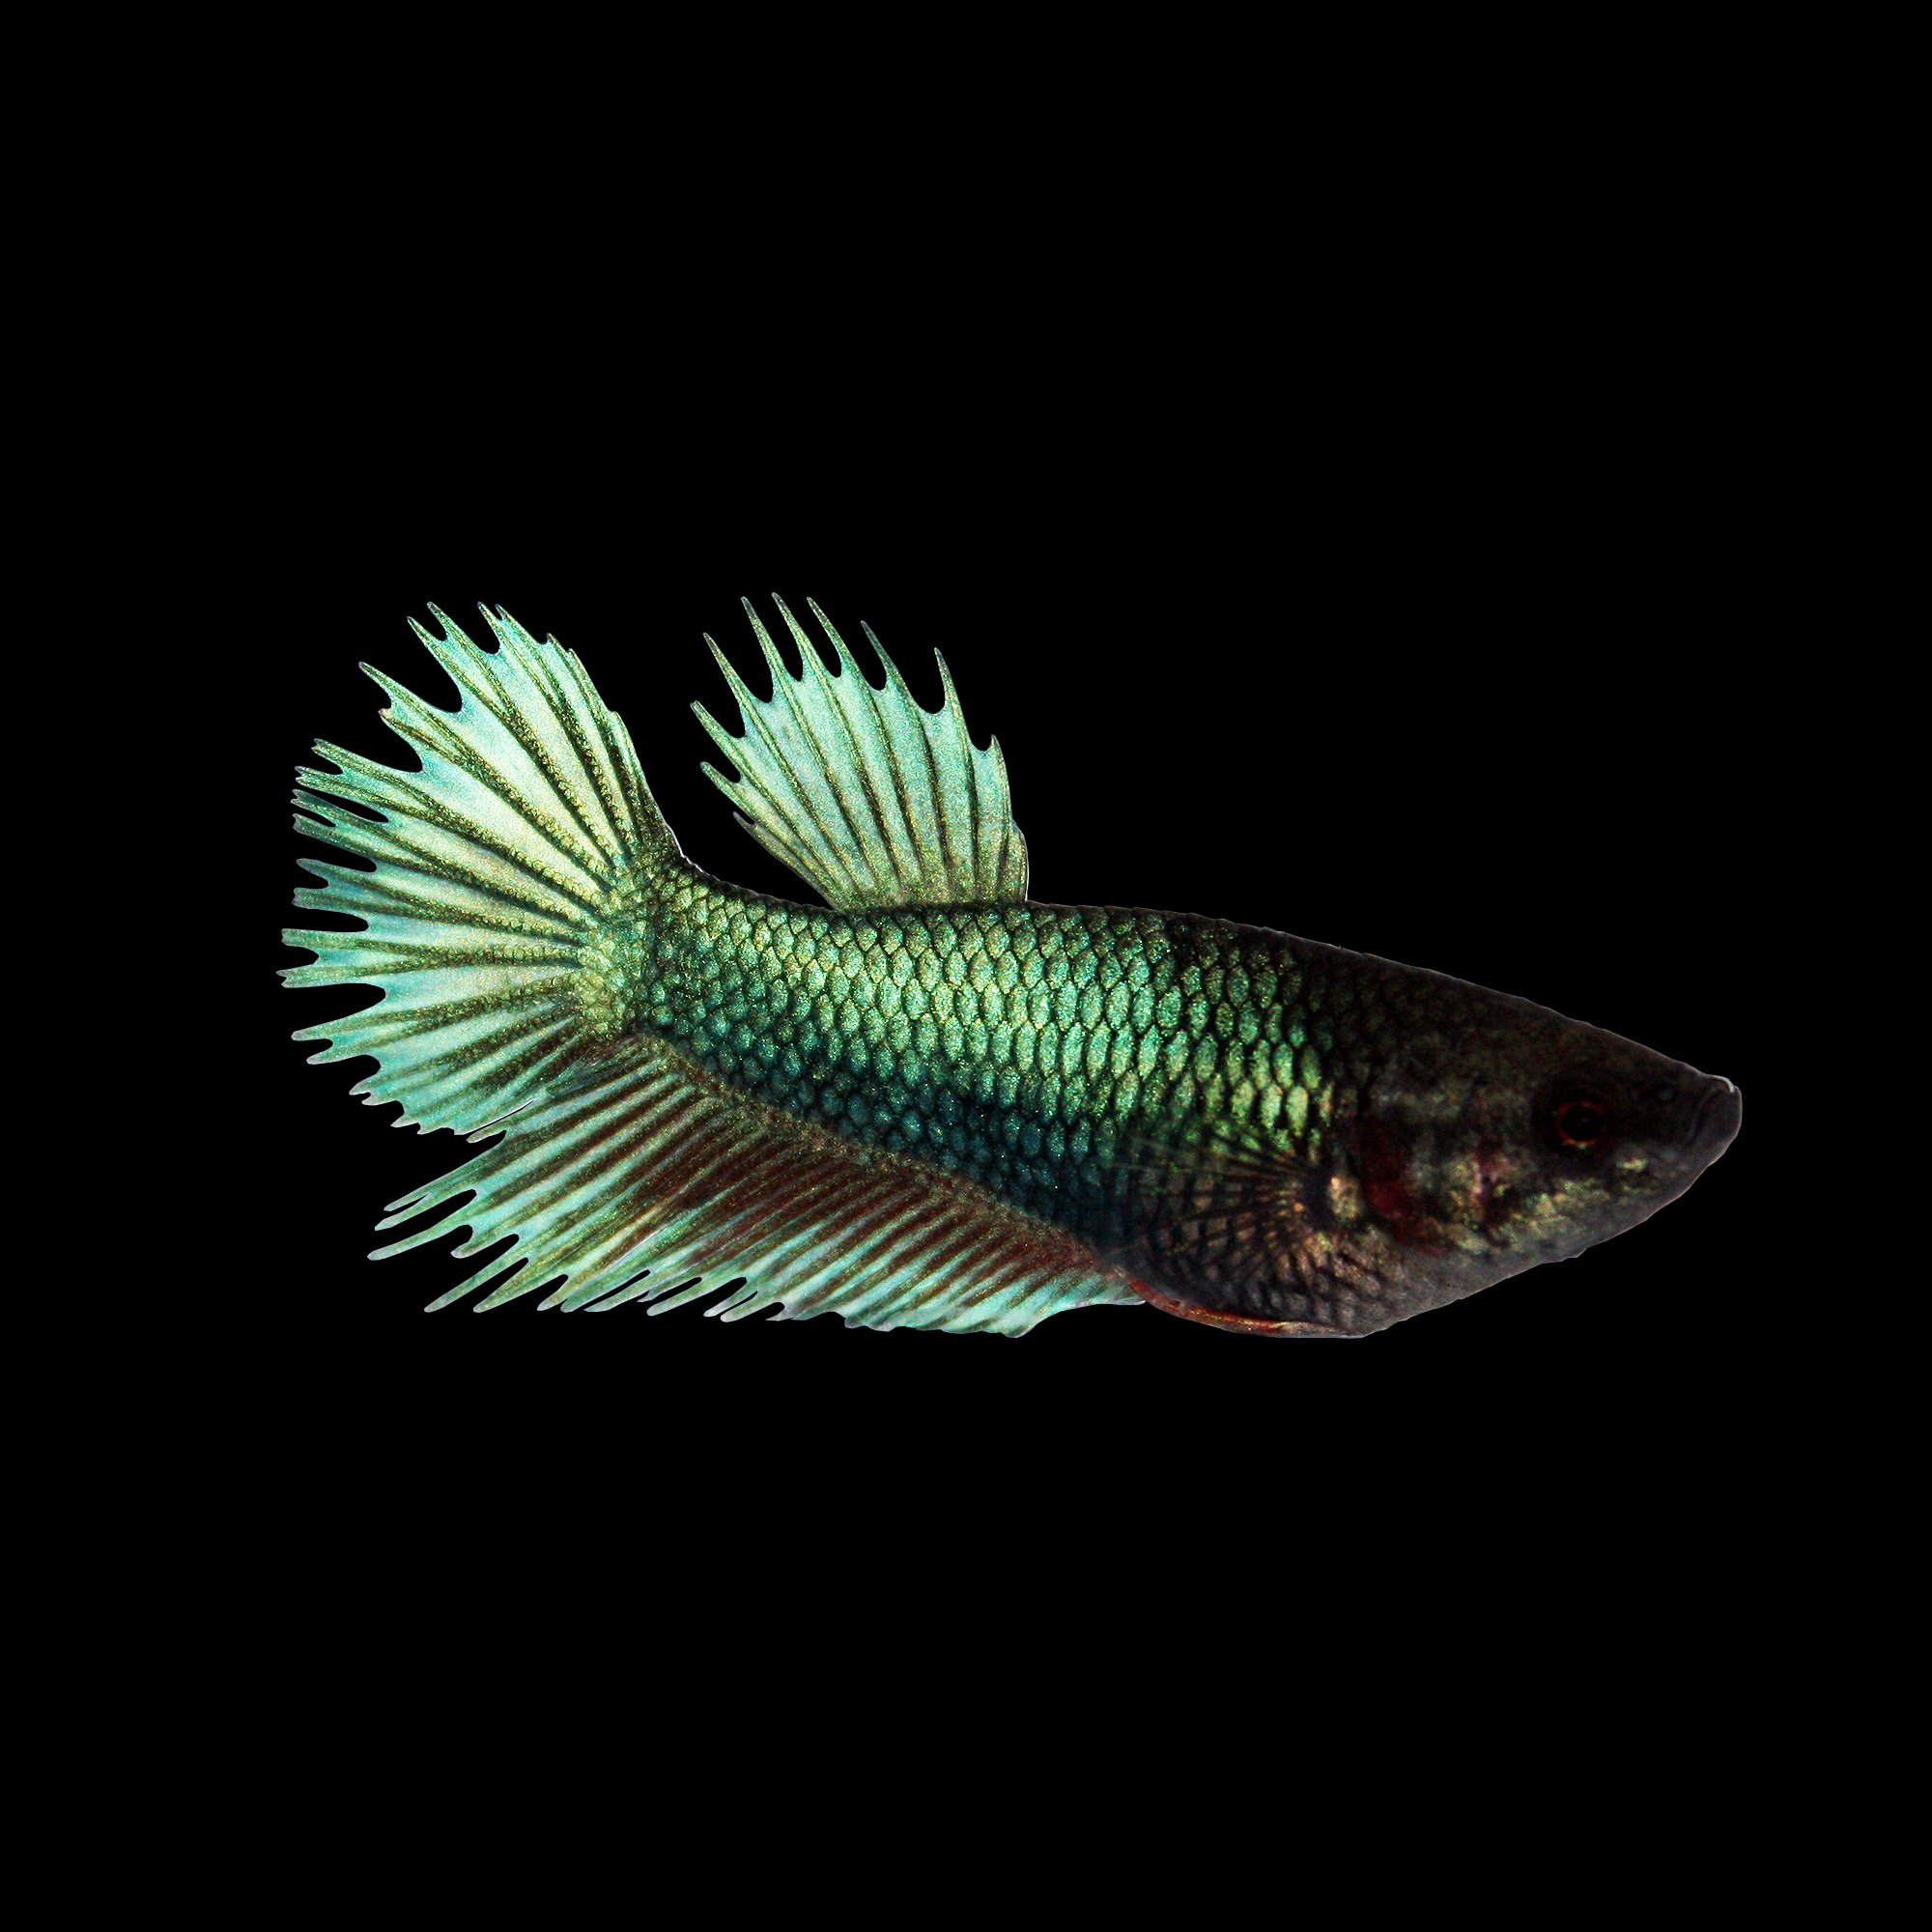 Green female crowntail betta fish petco for Types of betta fish petco